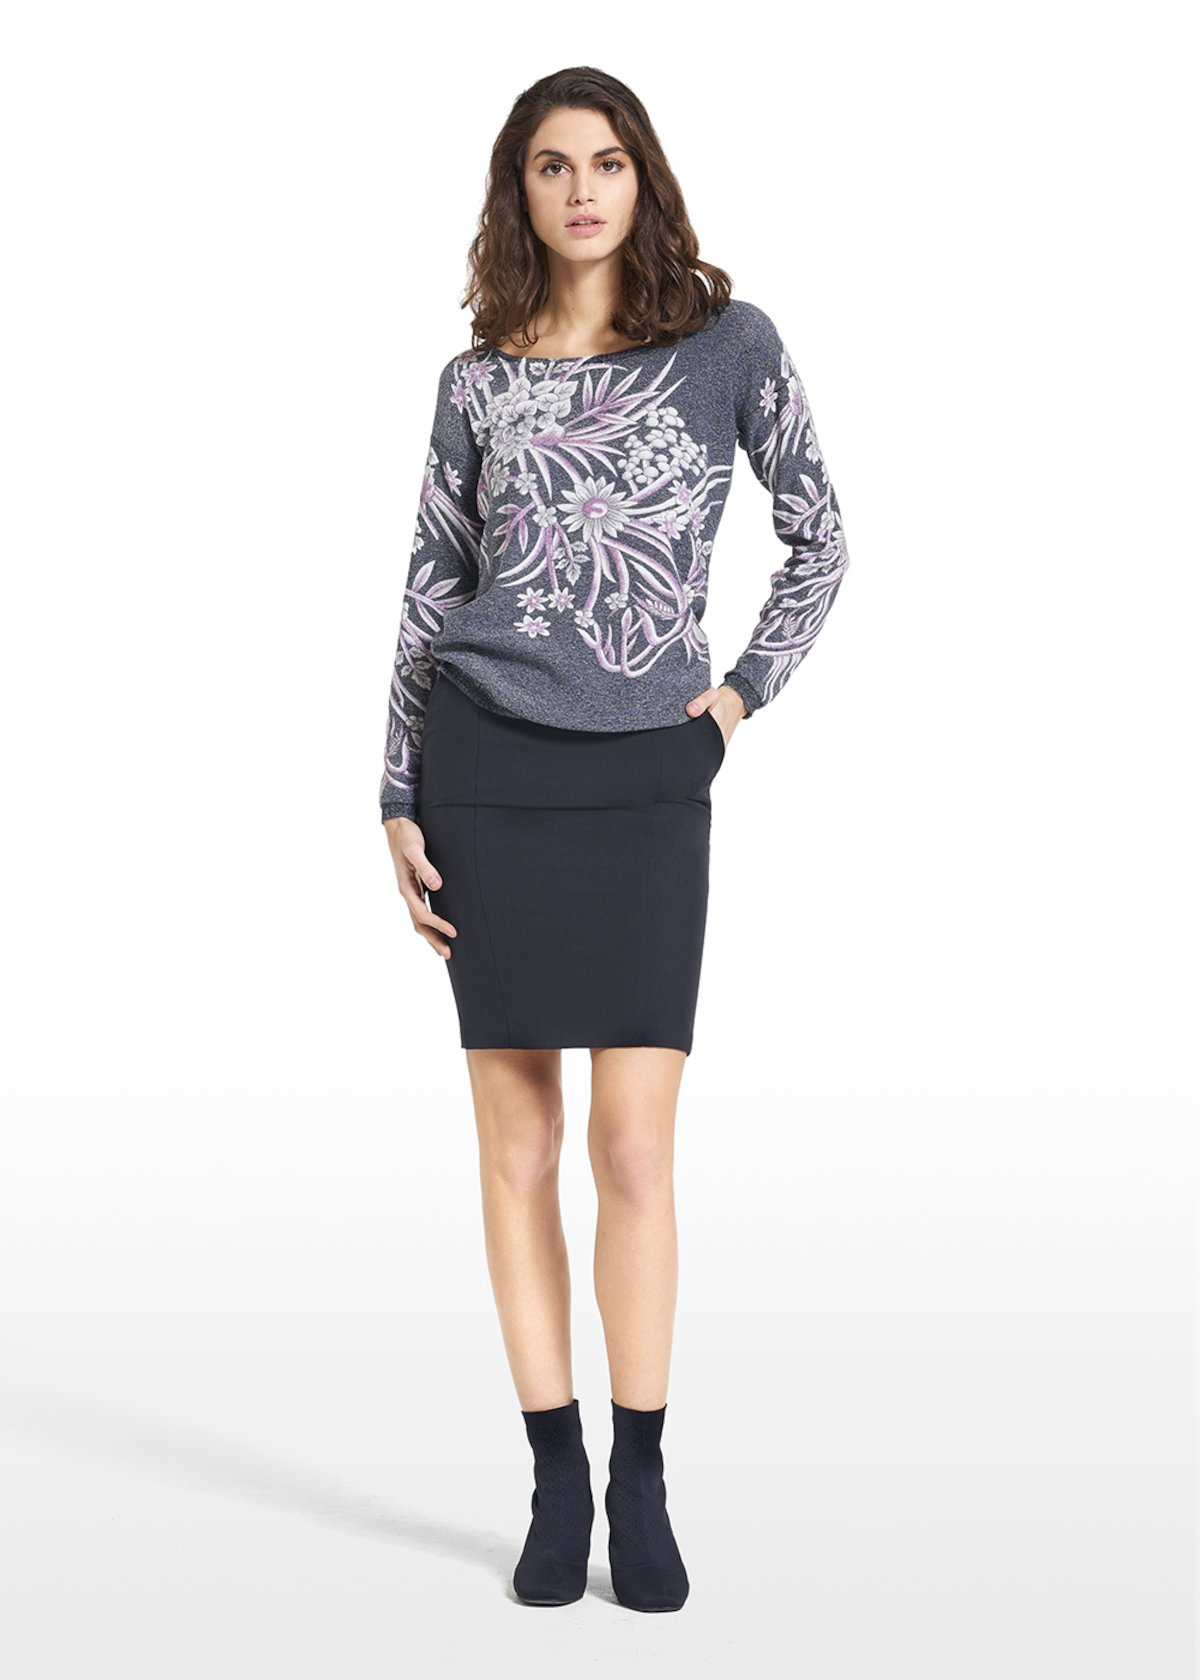 Sweater Mamy with Madonna neckline and floral pattern. - Blue Fantasia - Woman - Category image